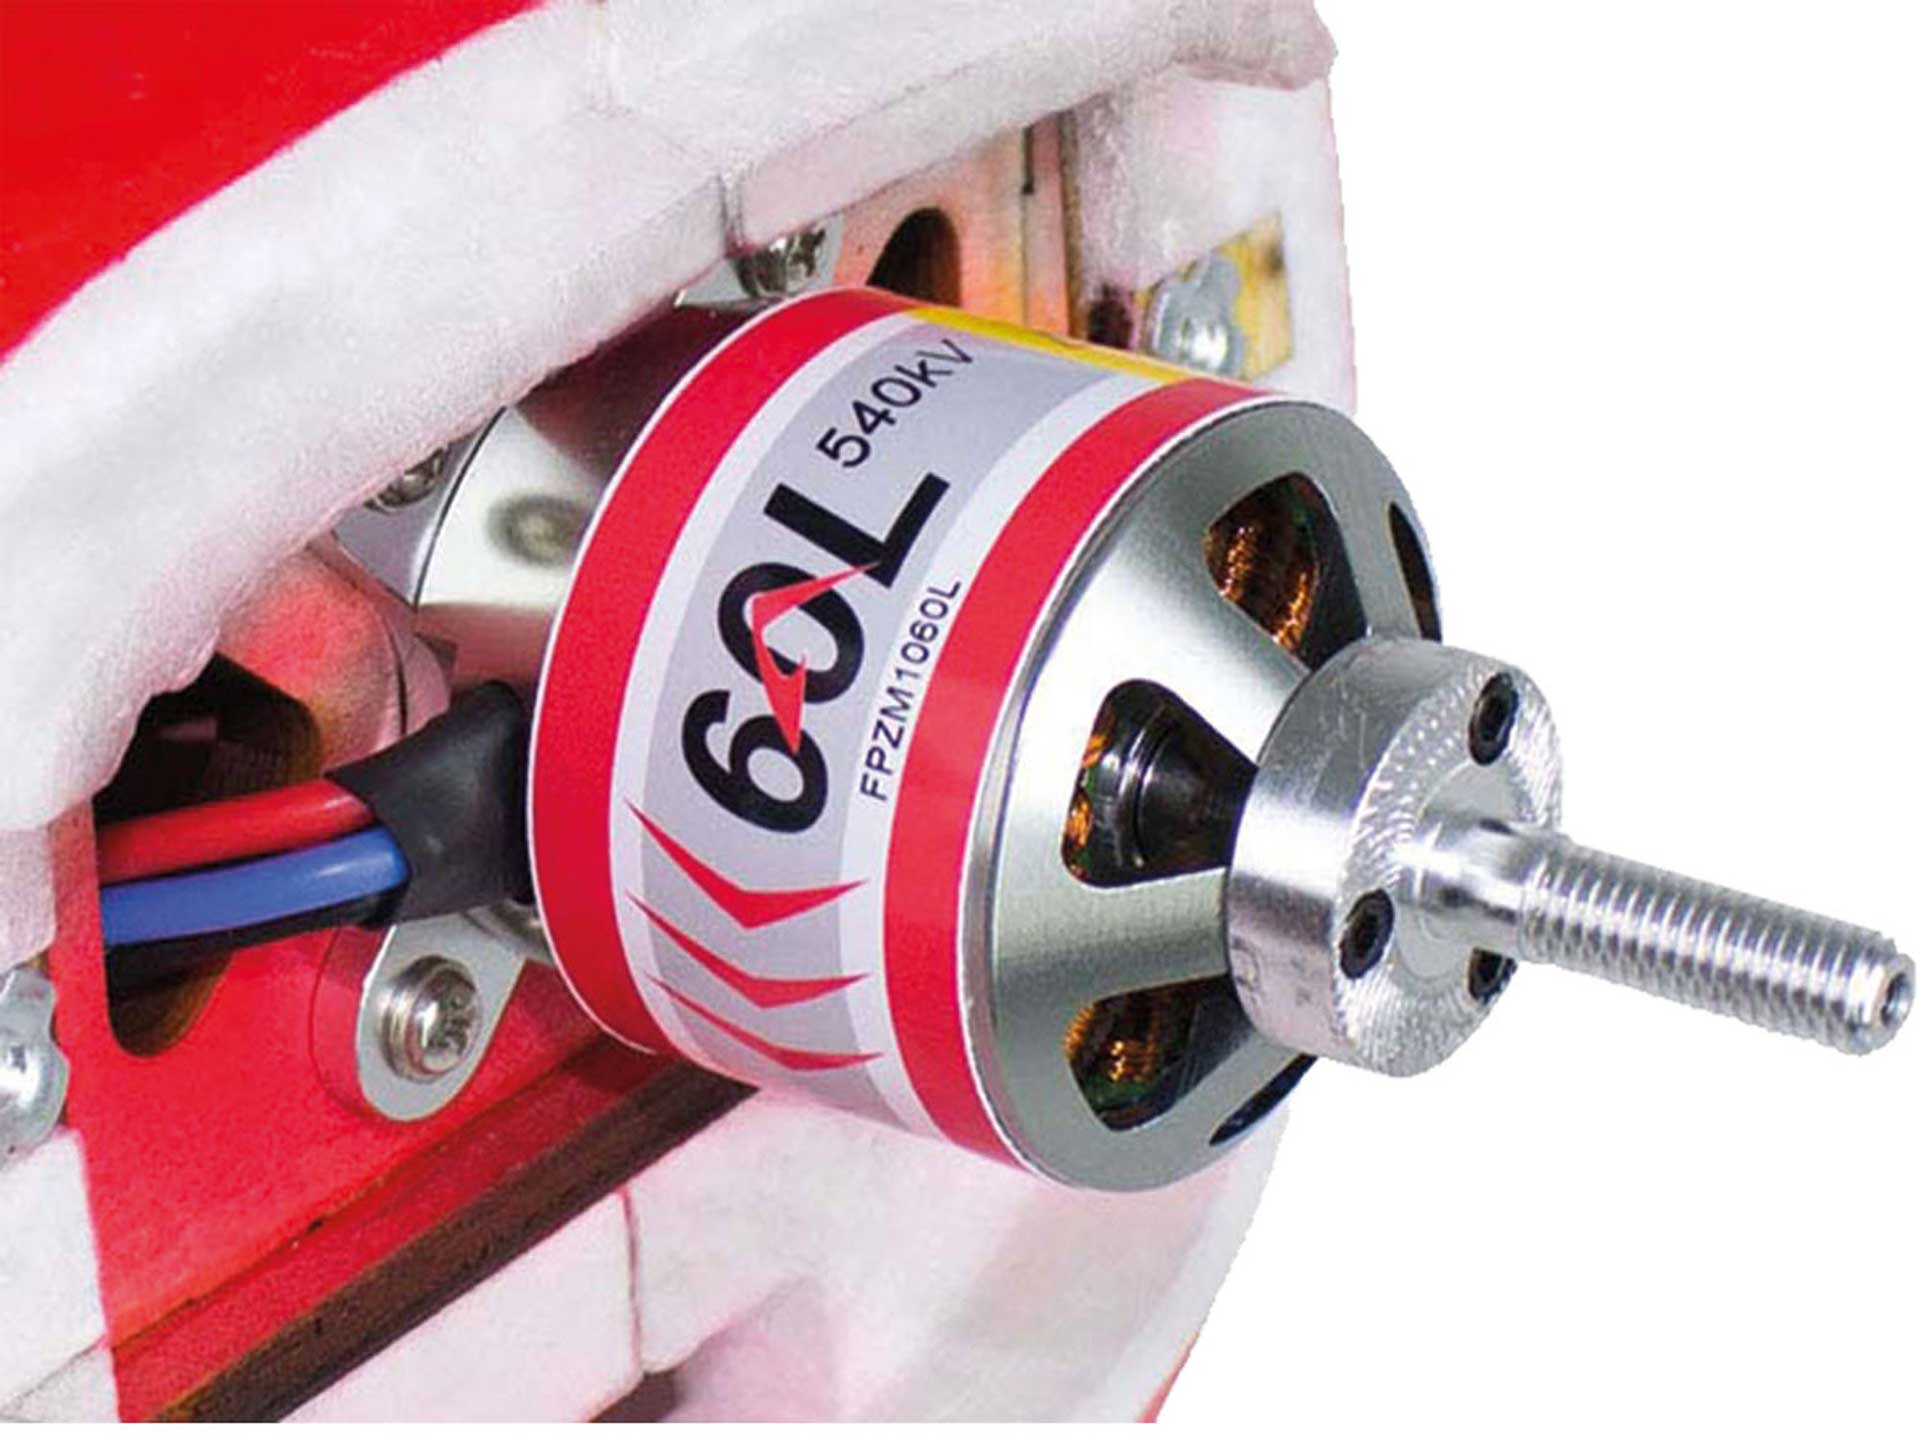 POTENZA 60 LIGHT 540KV BRUSHLESS MOTOR